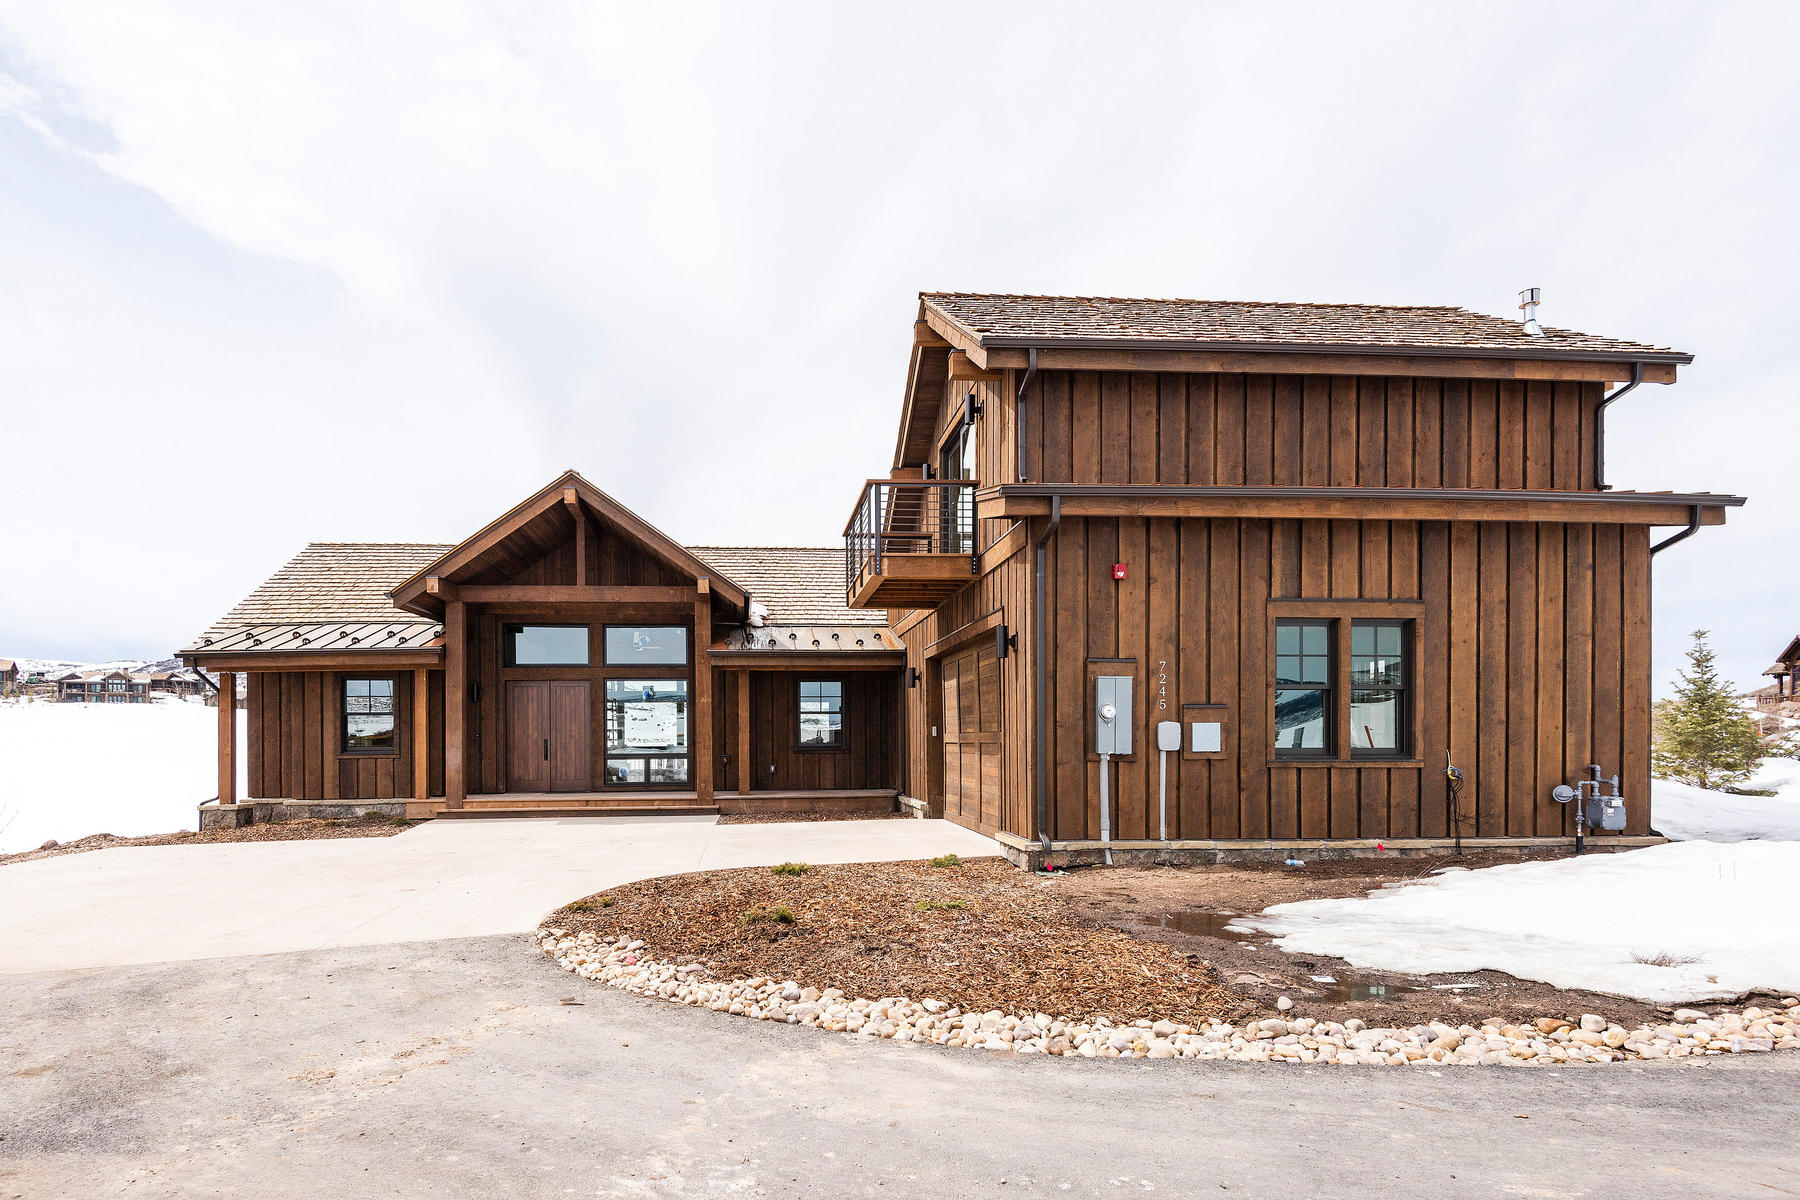 Single Family Homes for Sale at Expanded Juniper Cabin with Spectacular Views! 5956 N High Plains Ct Lot 382 Heber City, Utah 84032 United States